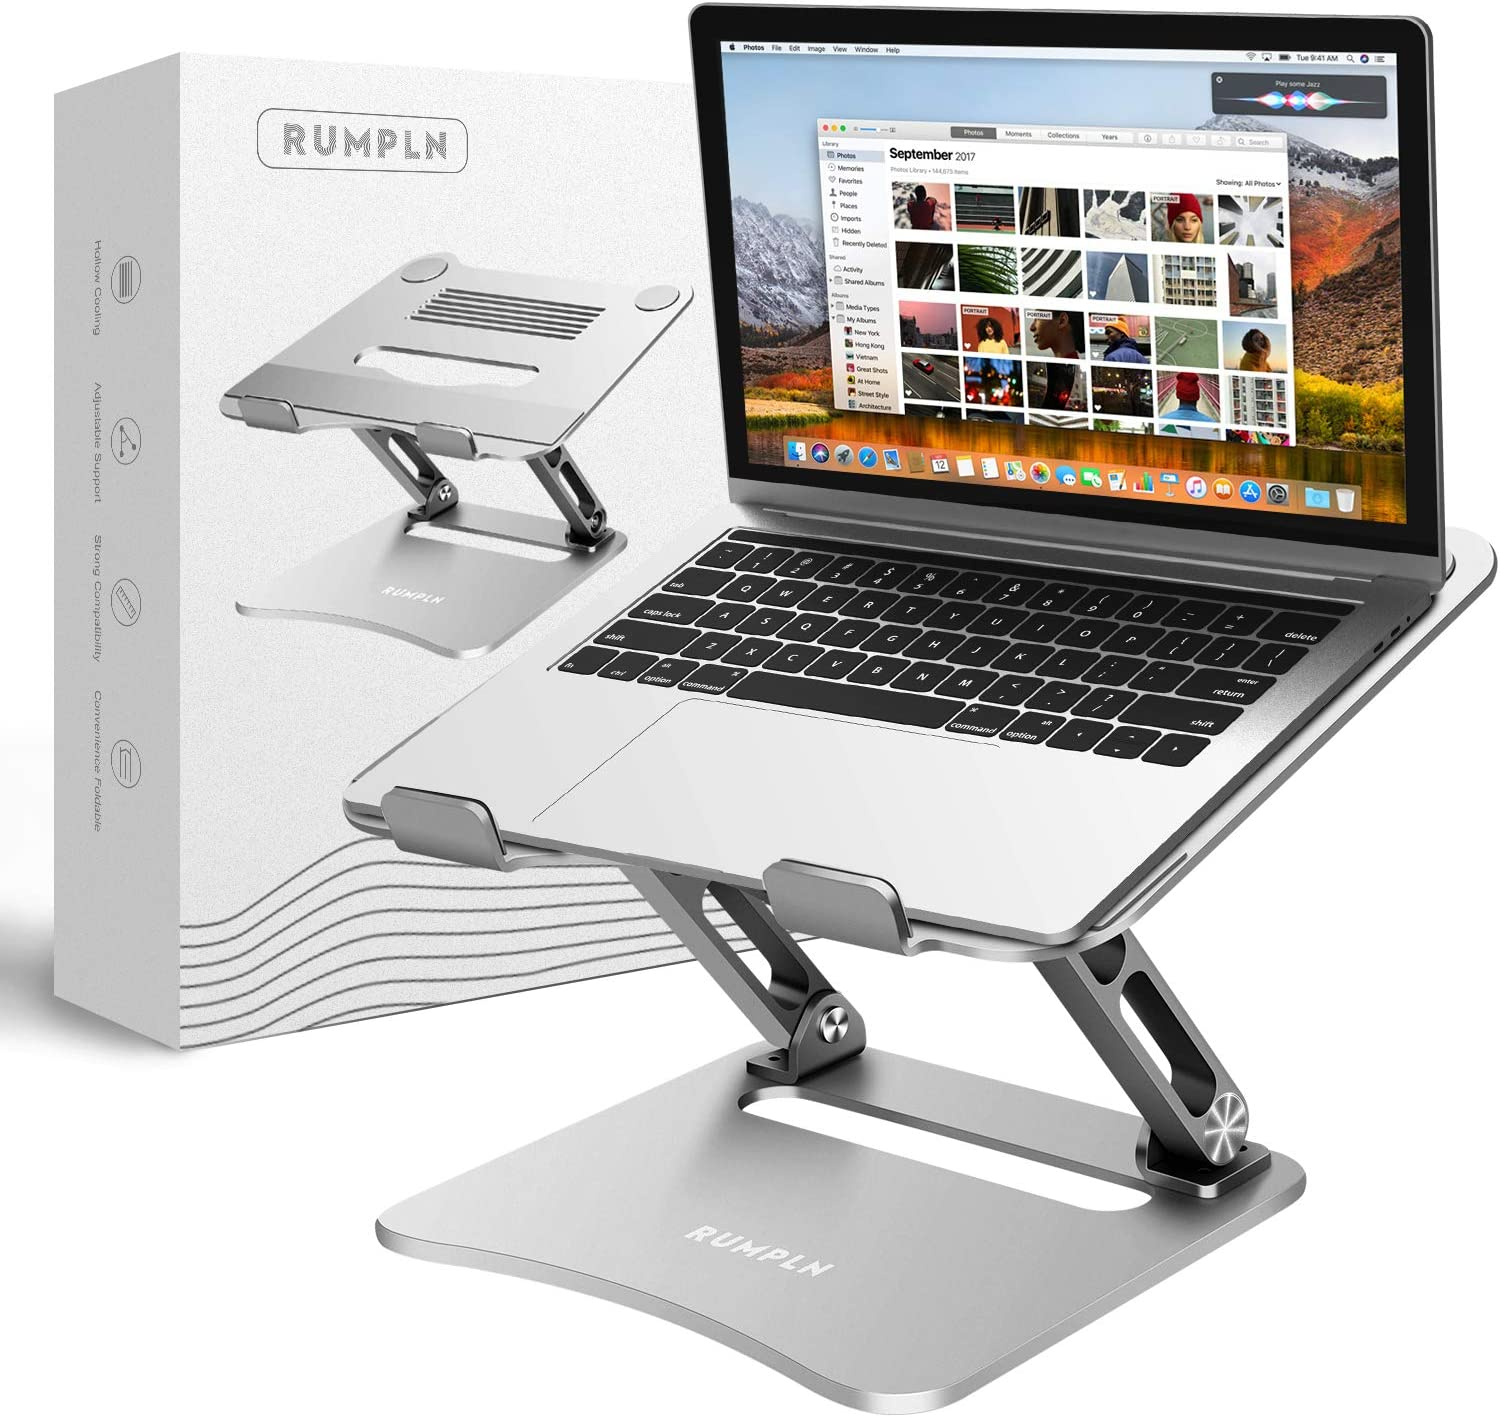 Adjustable Laptop Stand, Laptop Holder, Laptop Riser with Heat-Vent to Elevate, Compatible with MacBook, Air, Pro, Dell XPS, Samsung, Alienware, All laptops 10-17.5 inches, up to 45 Lbs-Silver